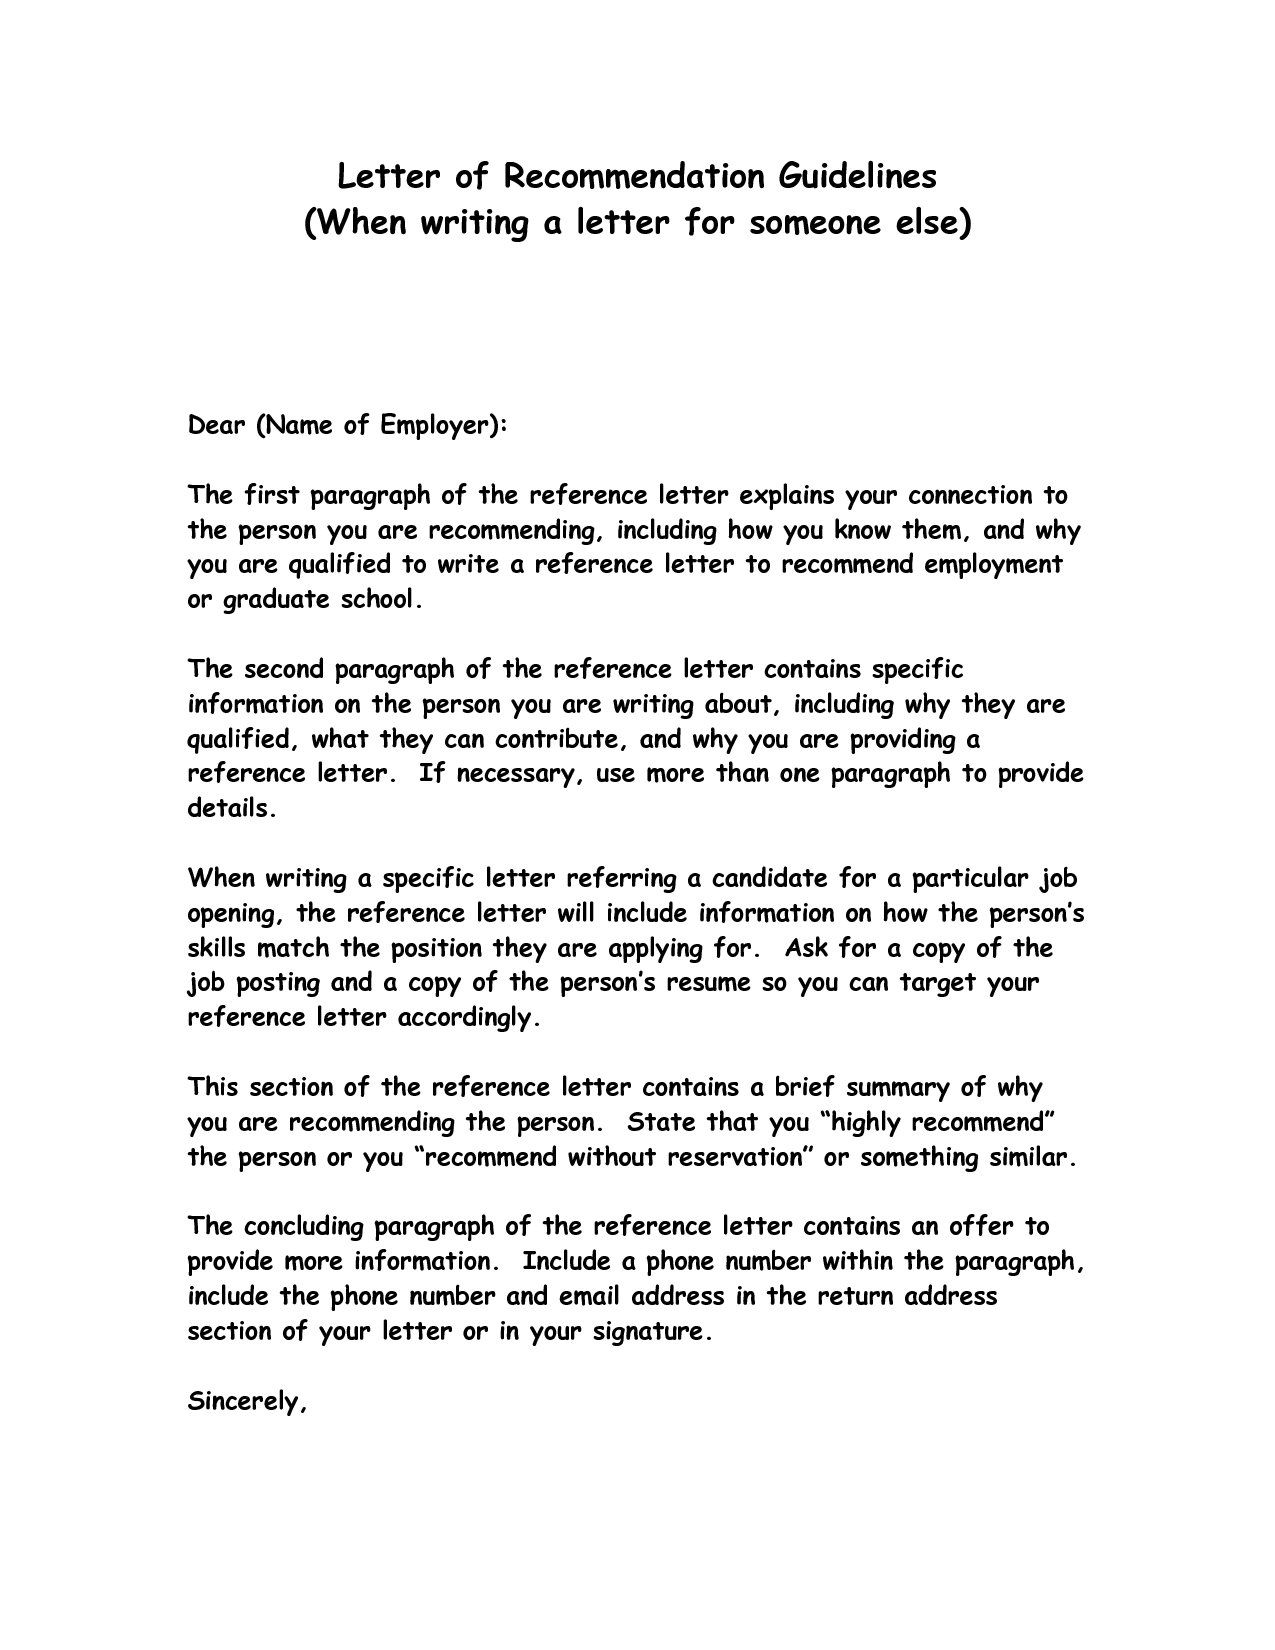 How To Write A Reference Letter | Letter | Books/crafts/gifts/hacks ...